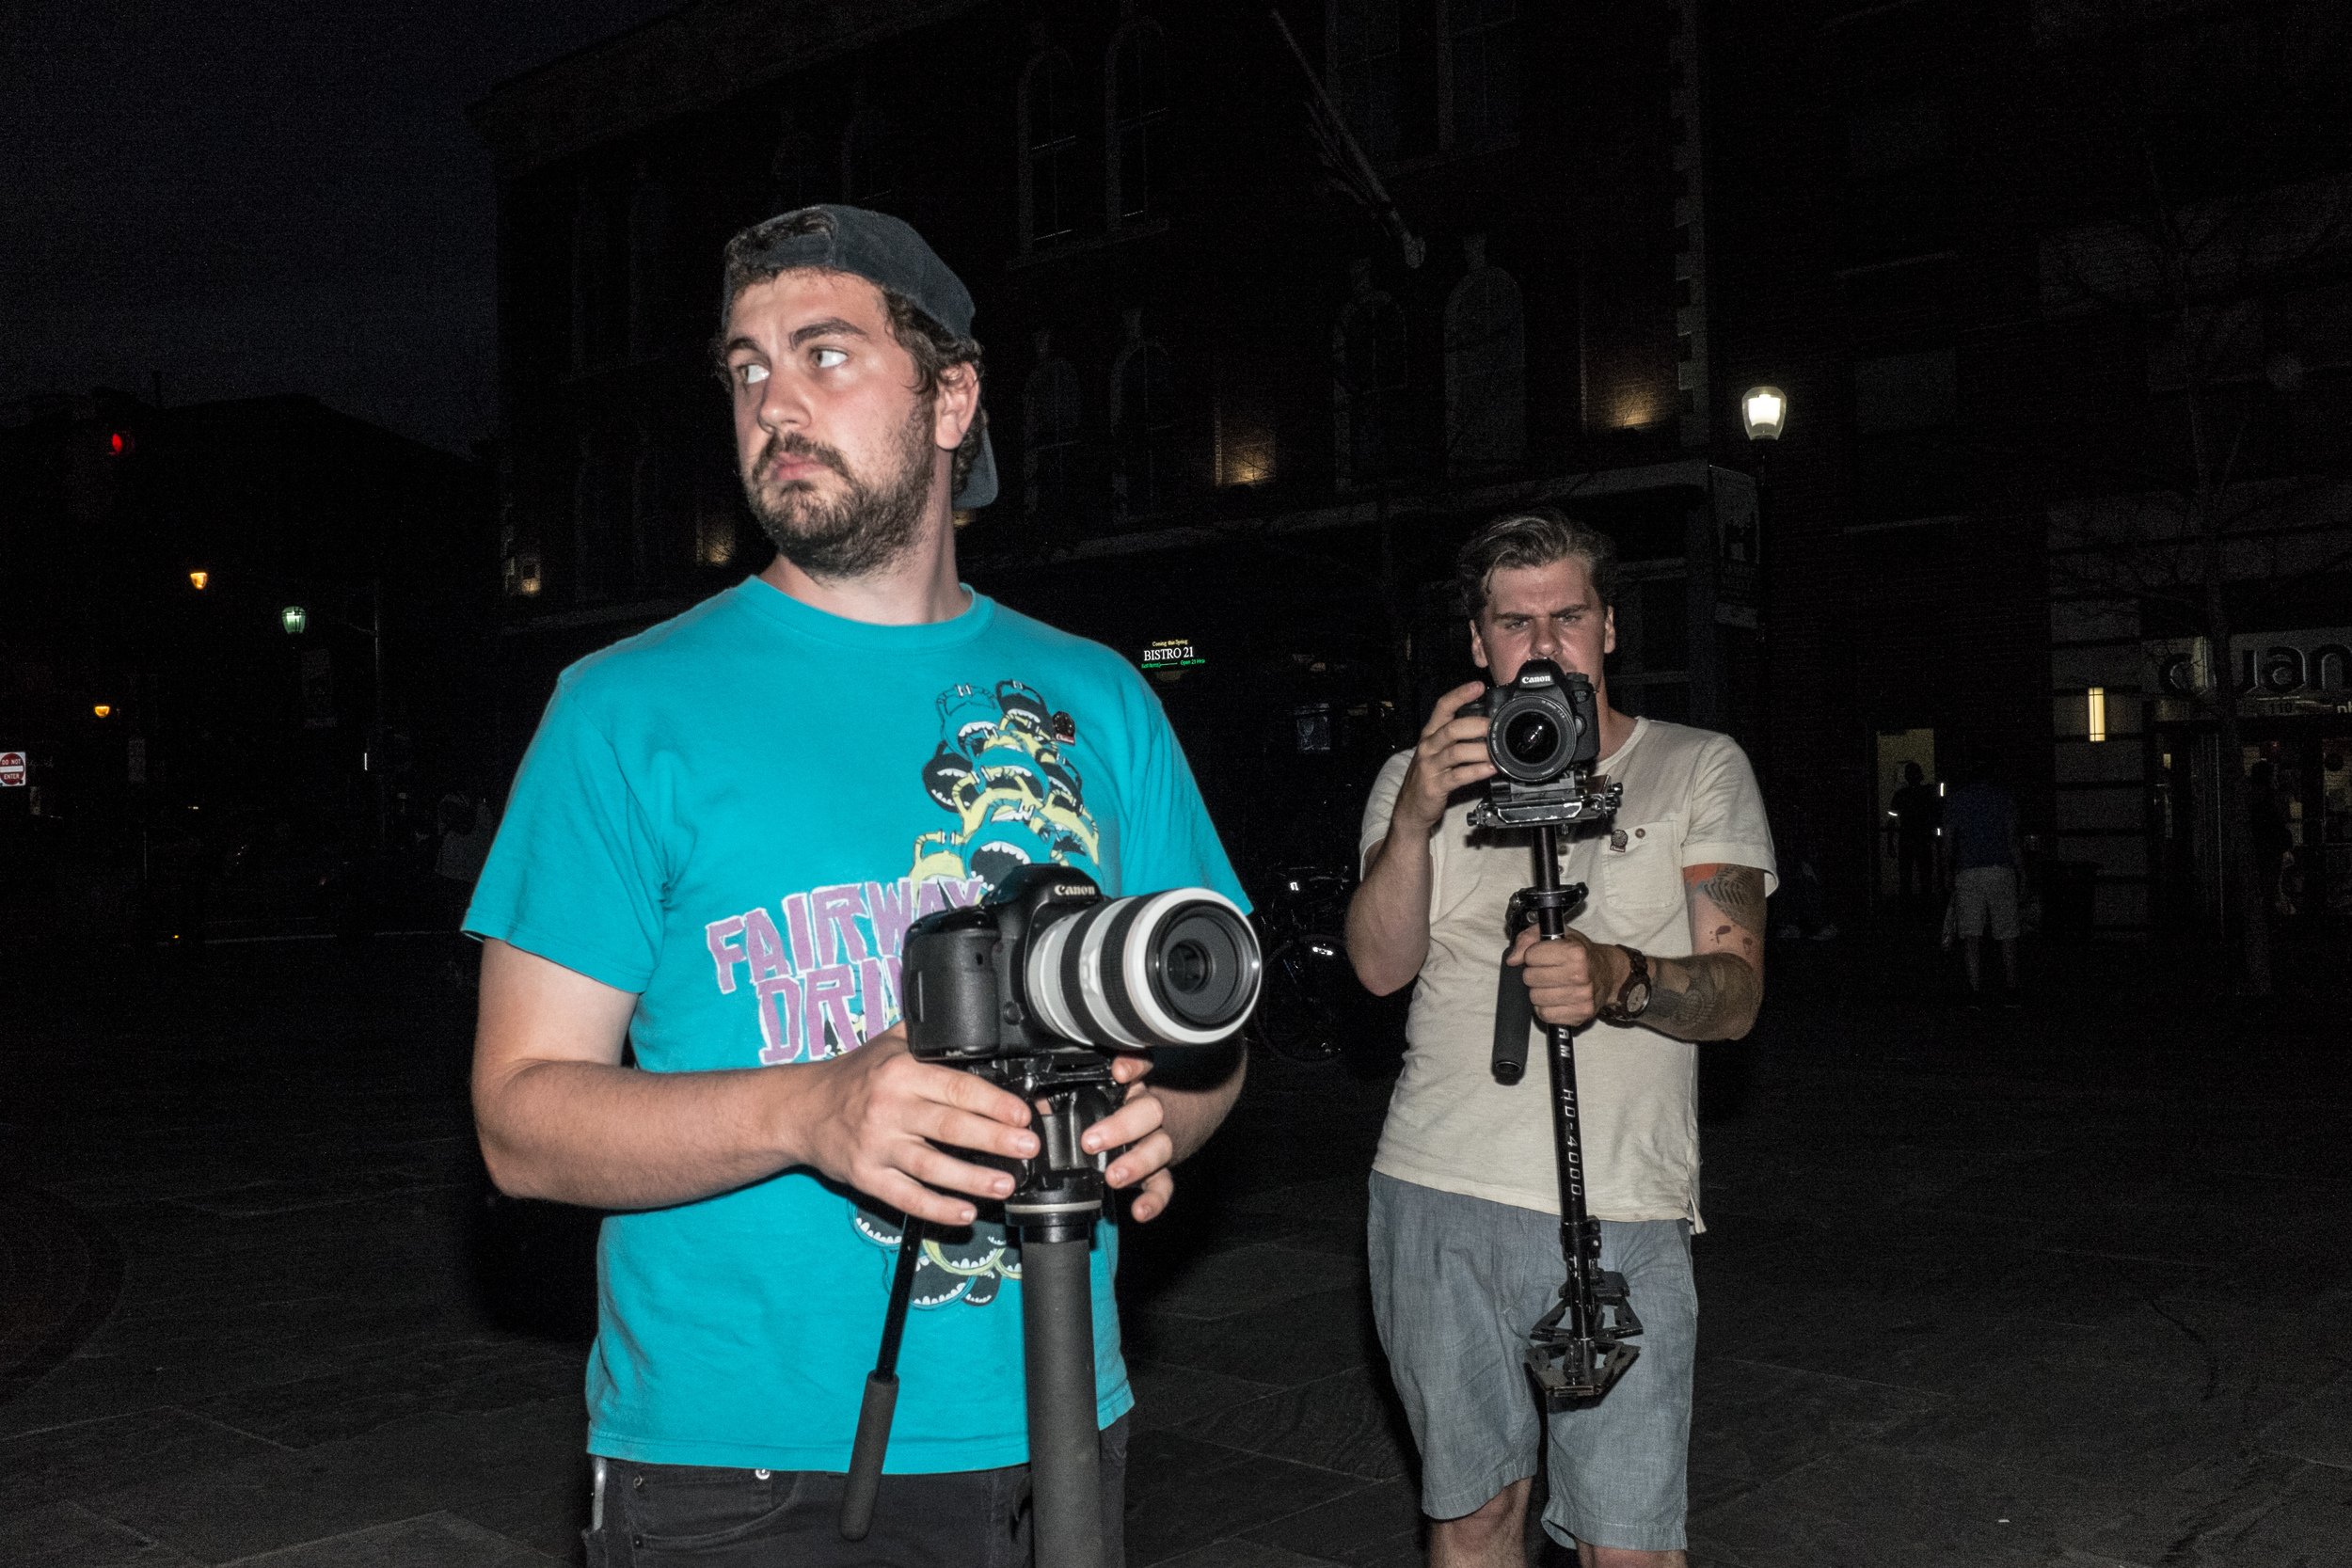 Videographers Kyle & Dave